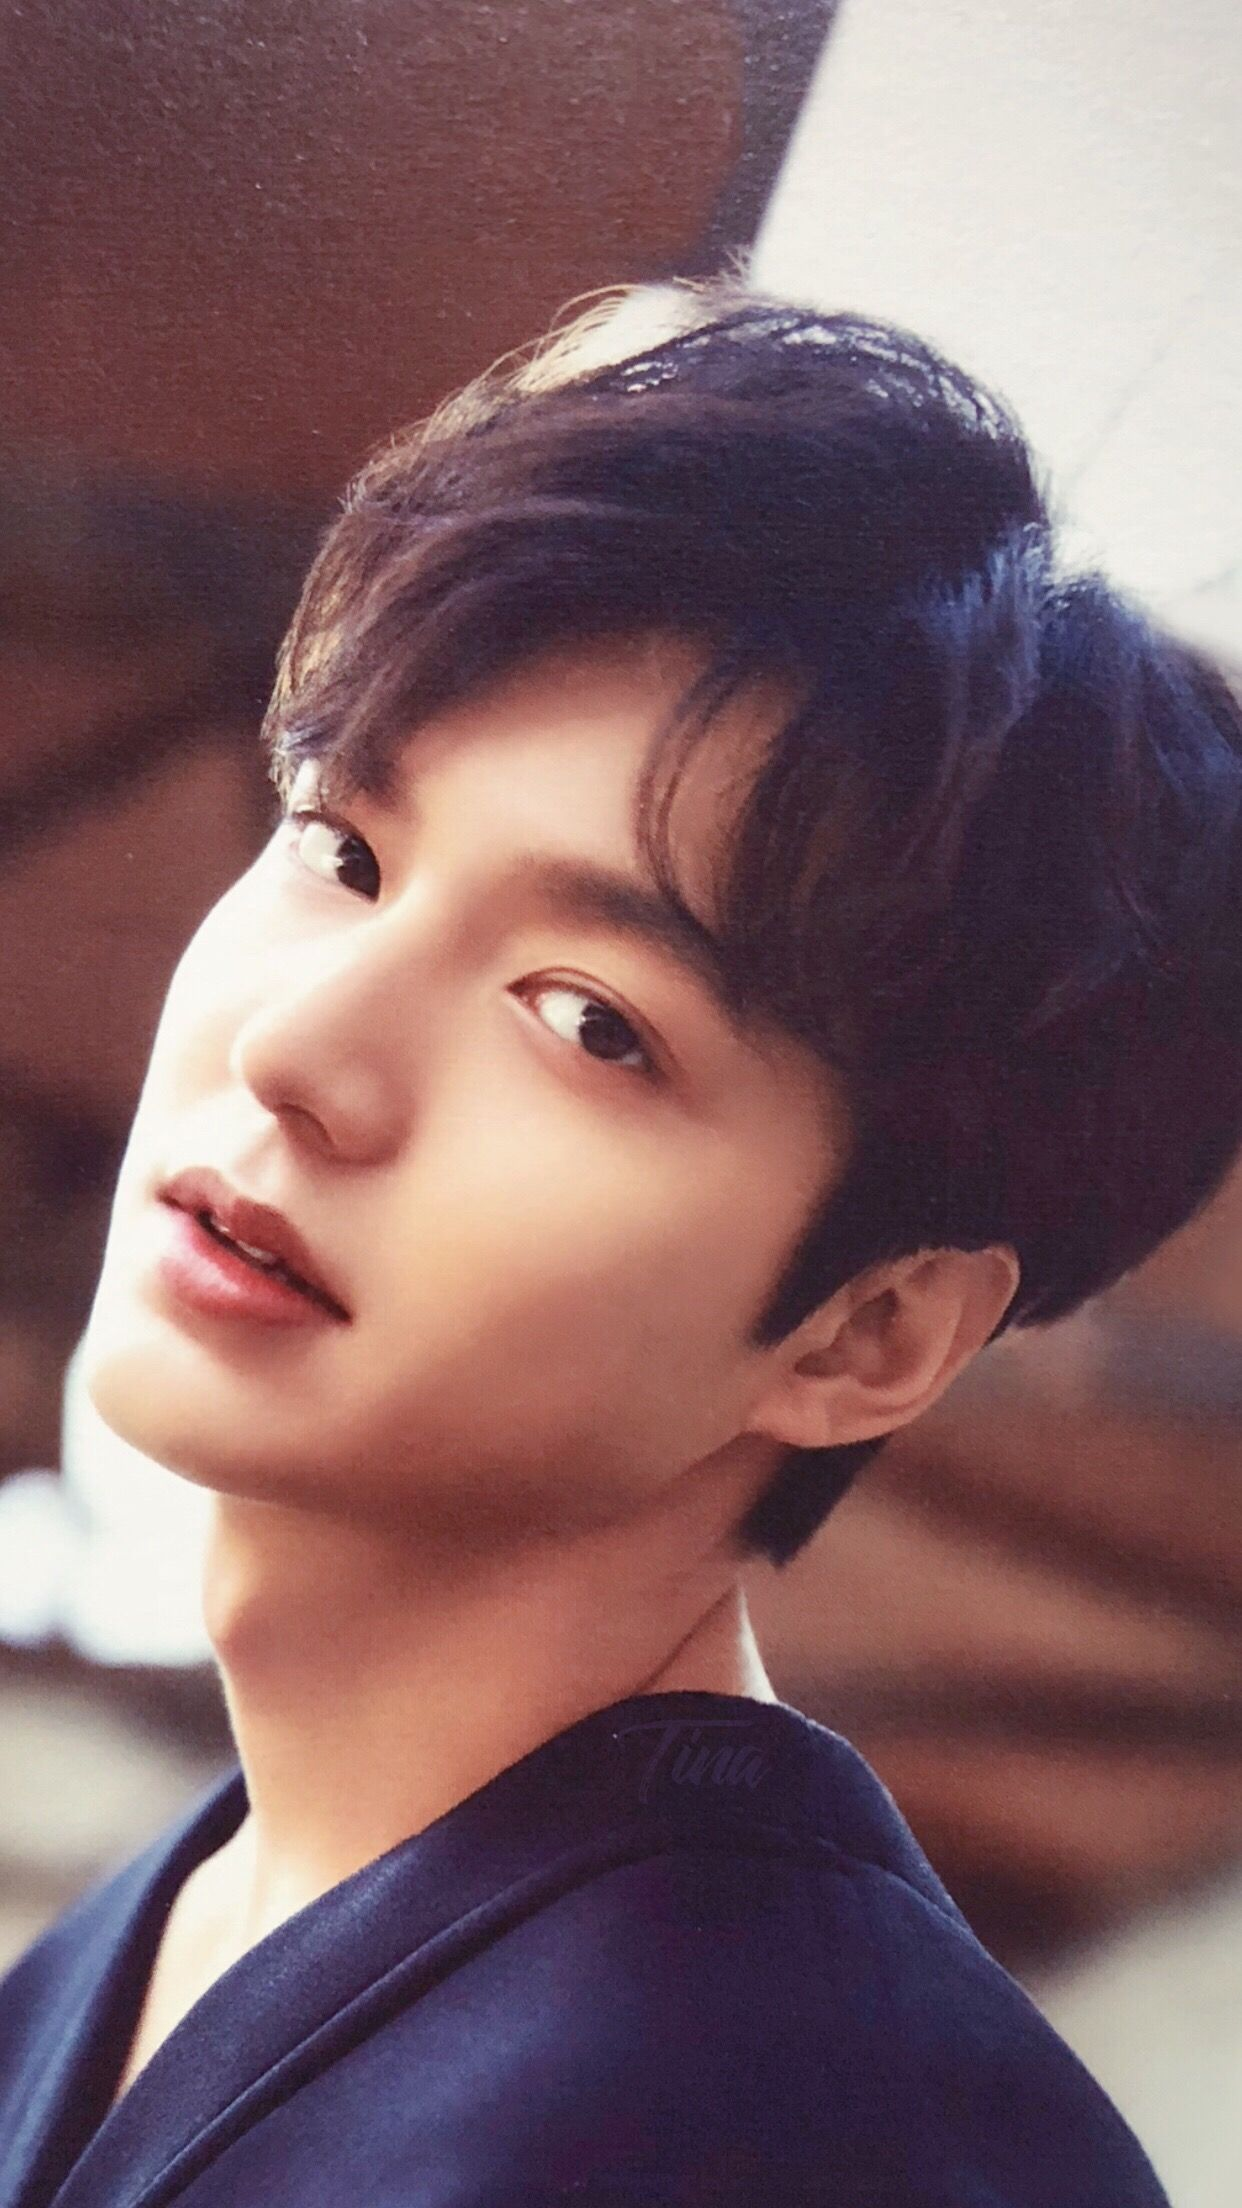 Lee Min Ho 2019 Official Minoz Calendar With Images